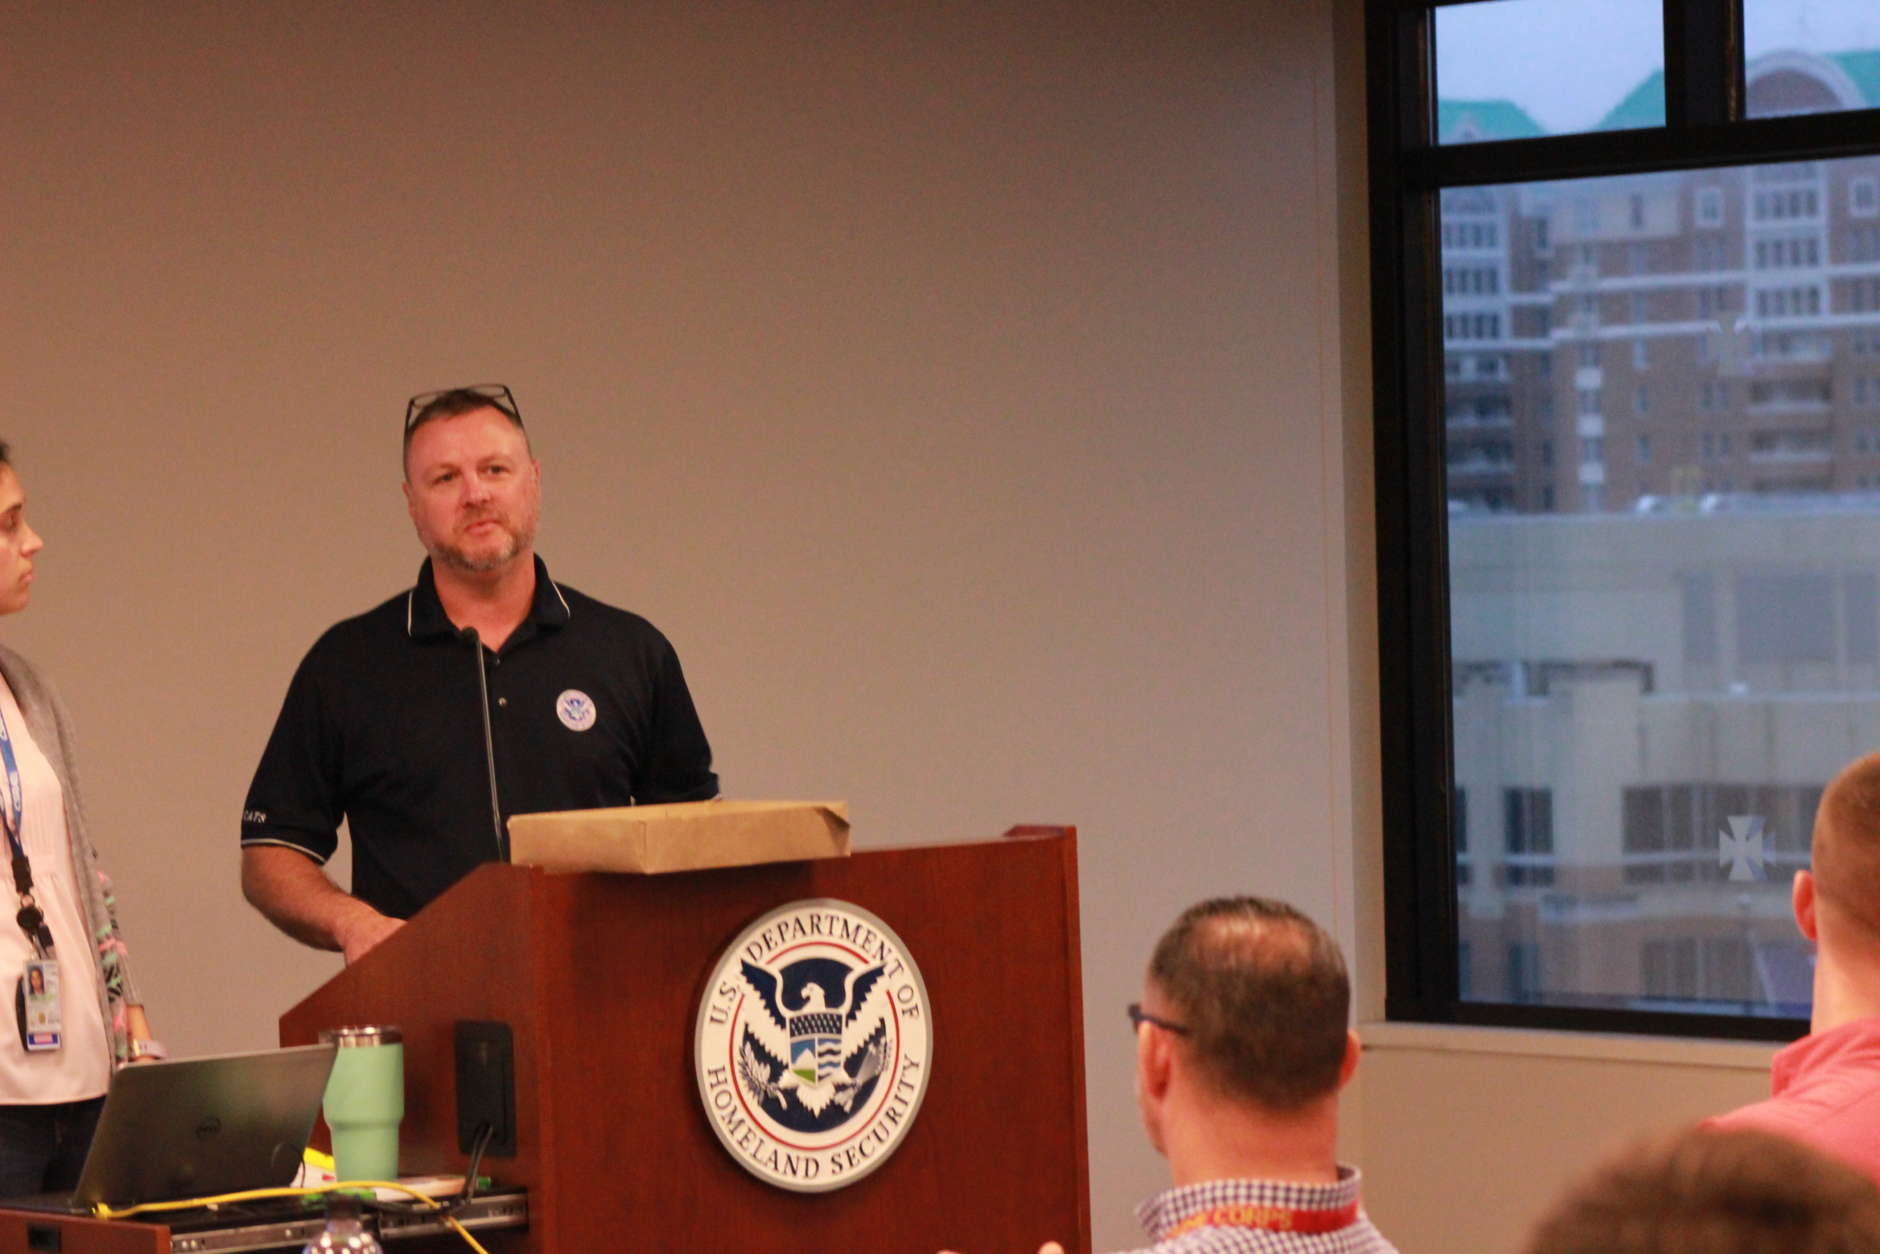 DHS NCATS meets under one roof in first all-hands meeting | Federal